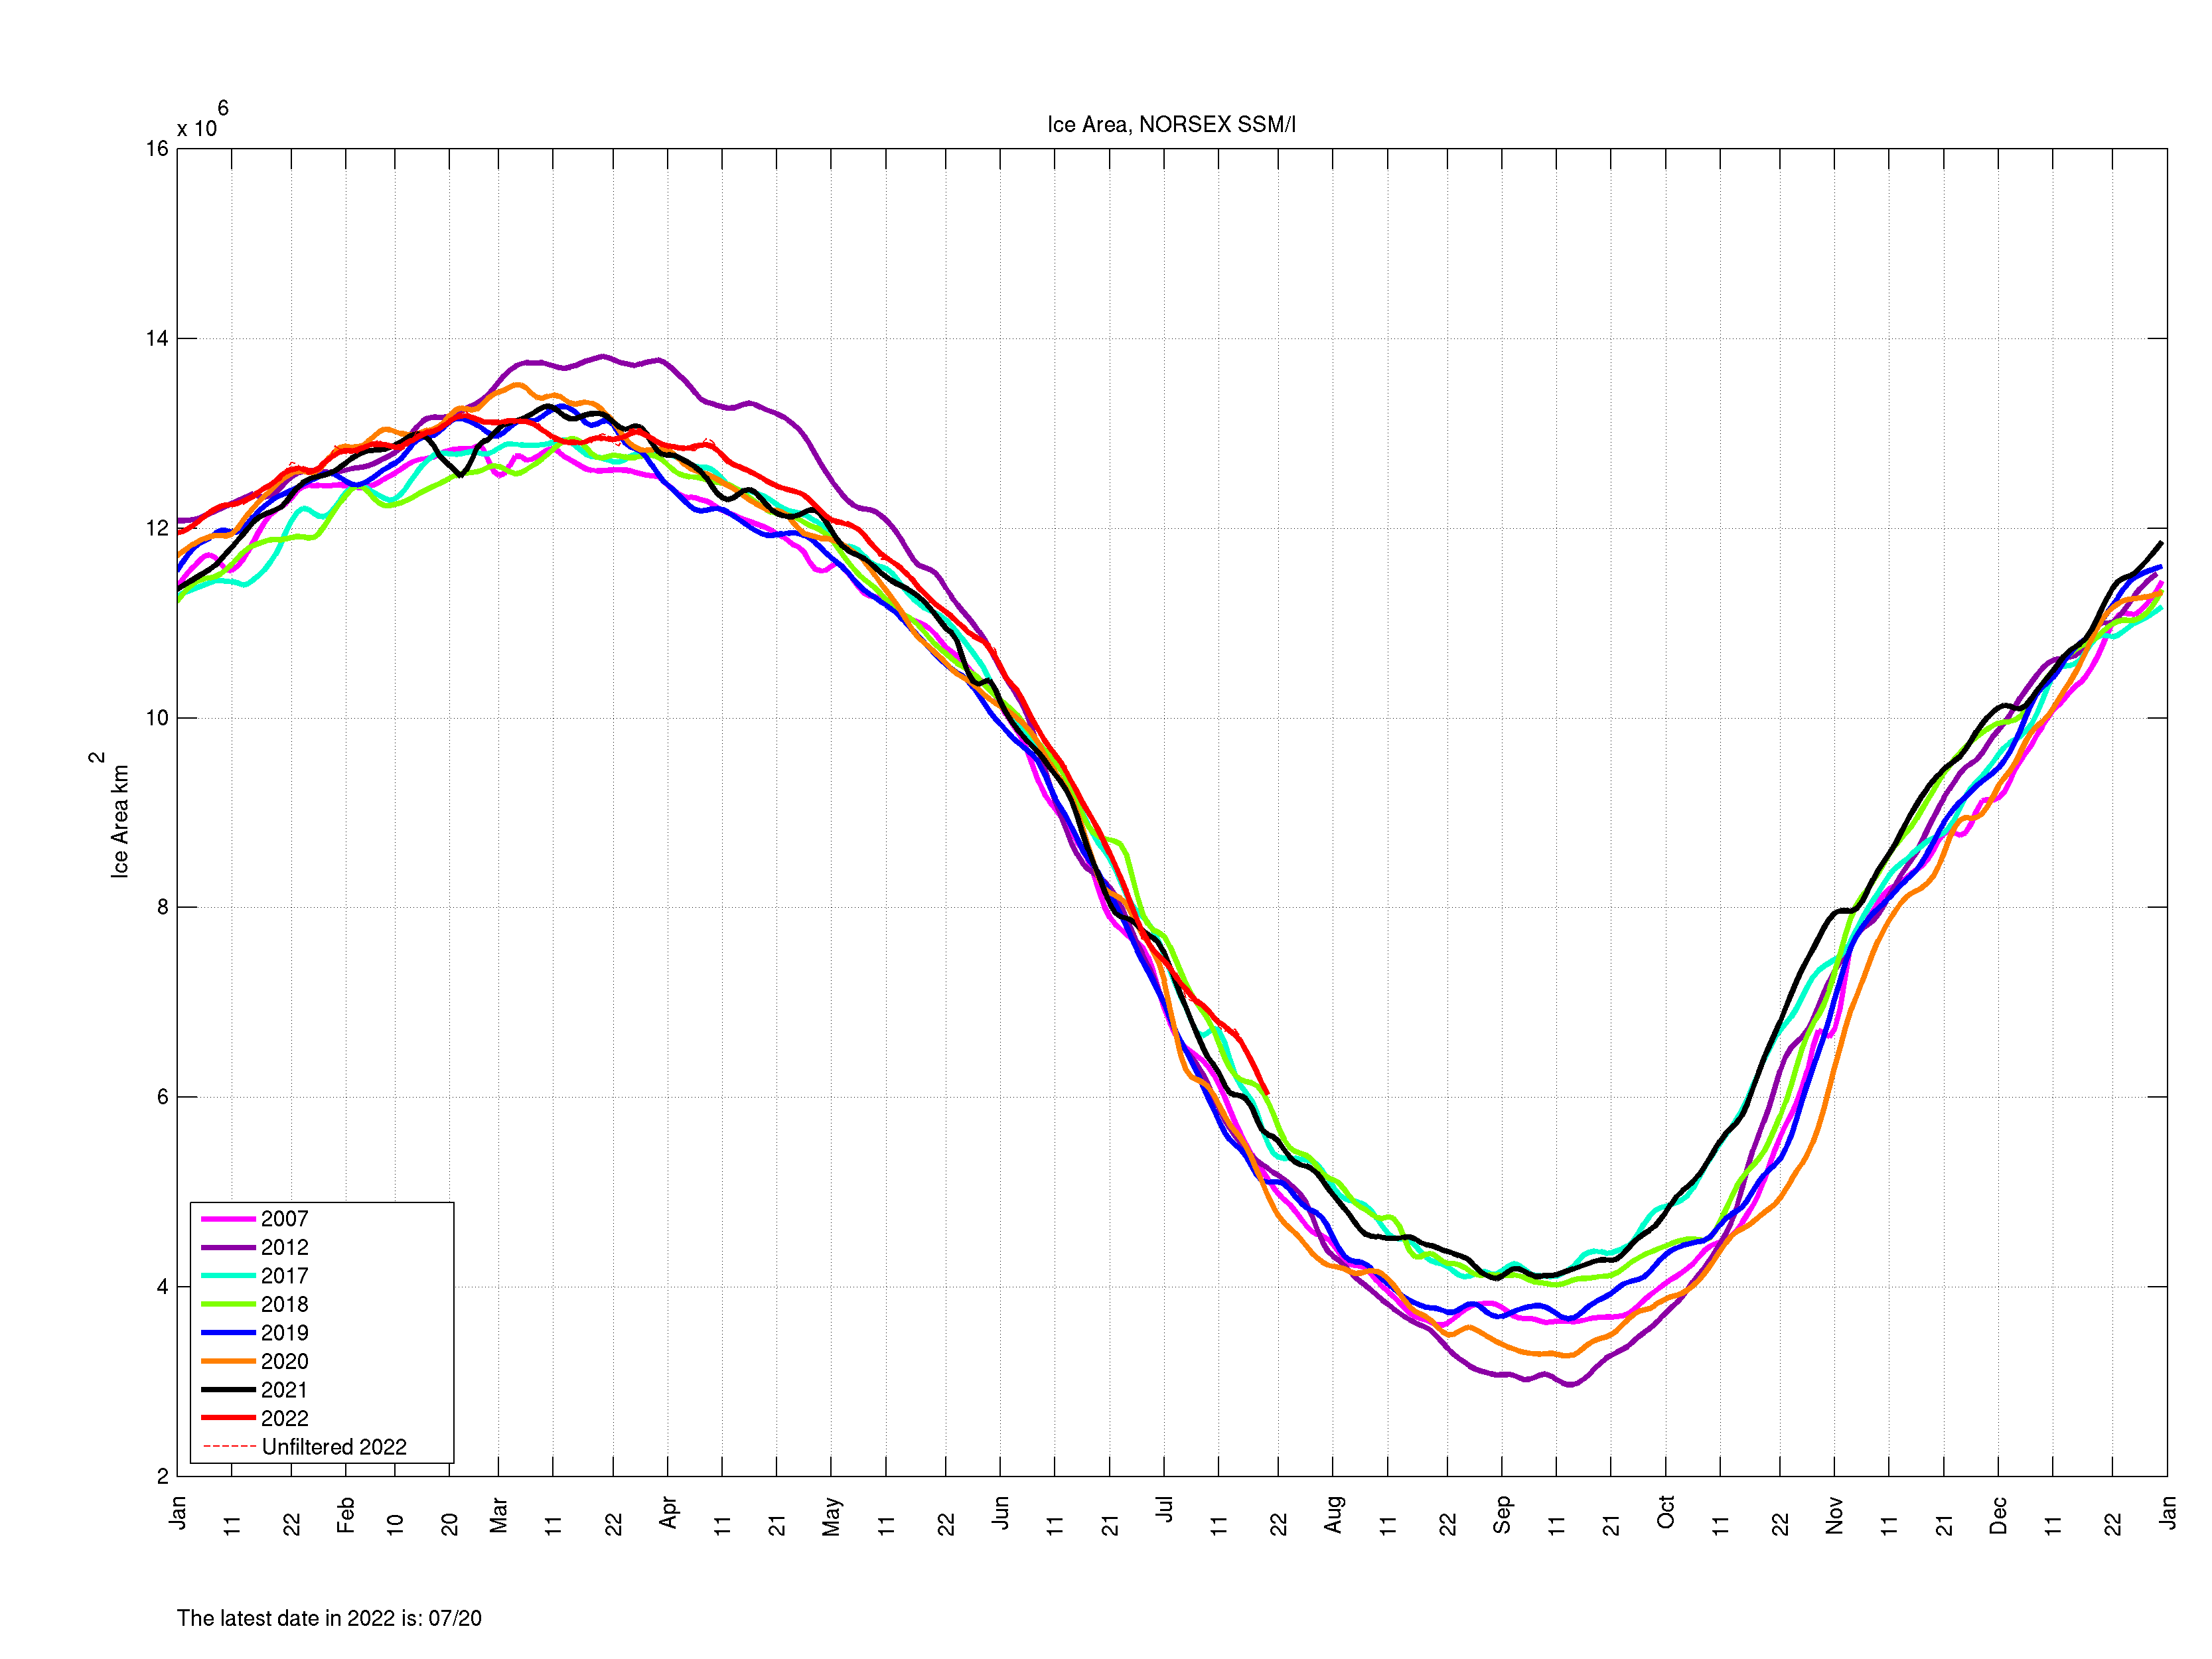 The 'Great Arctic Cyclone of 2016' turned out to be not so